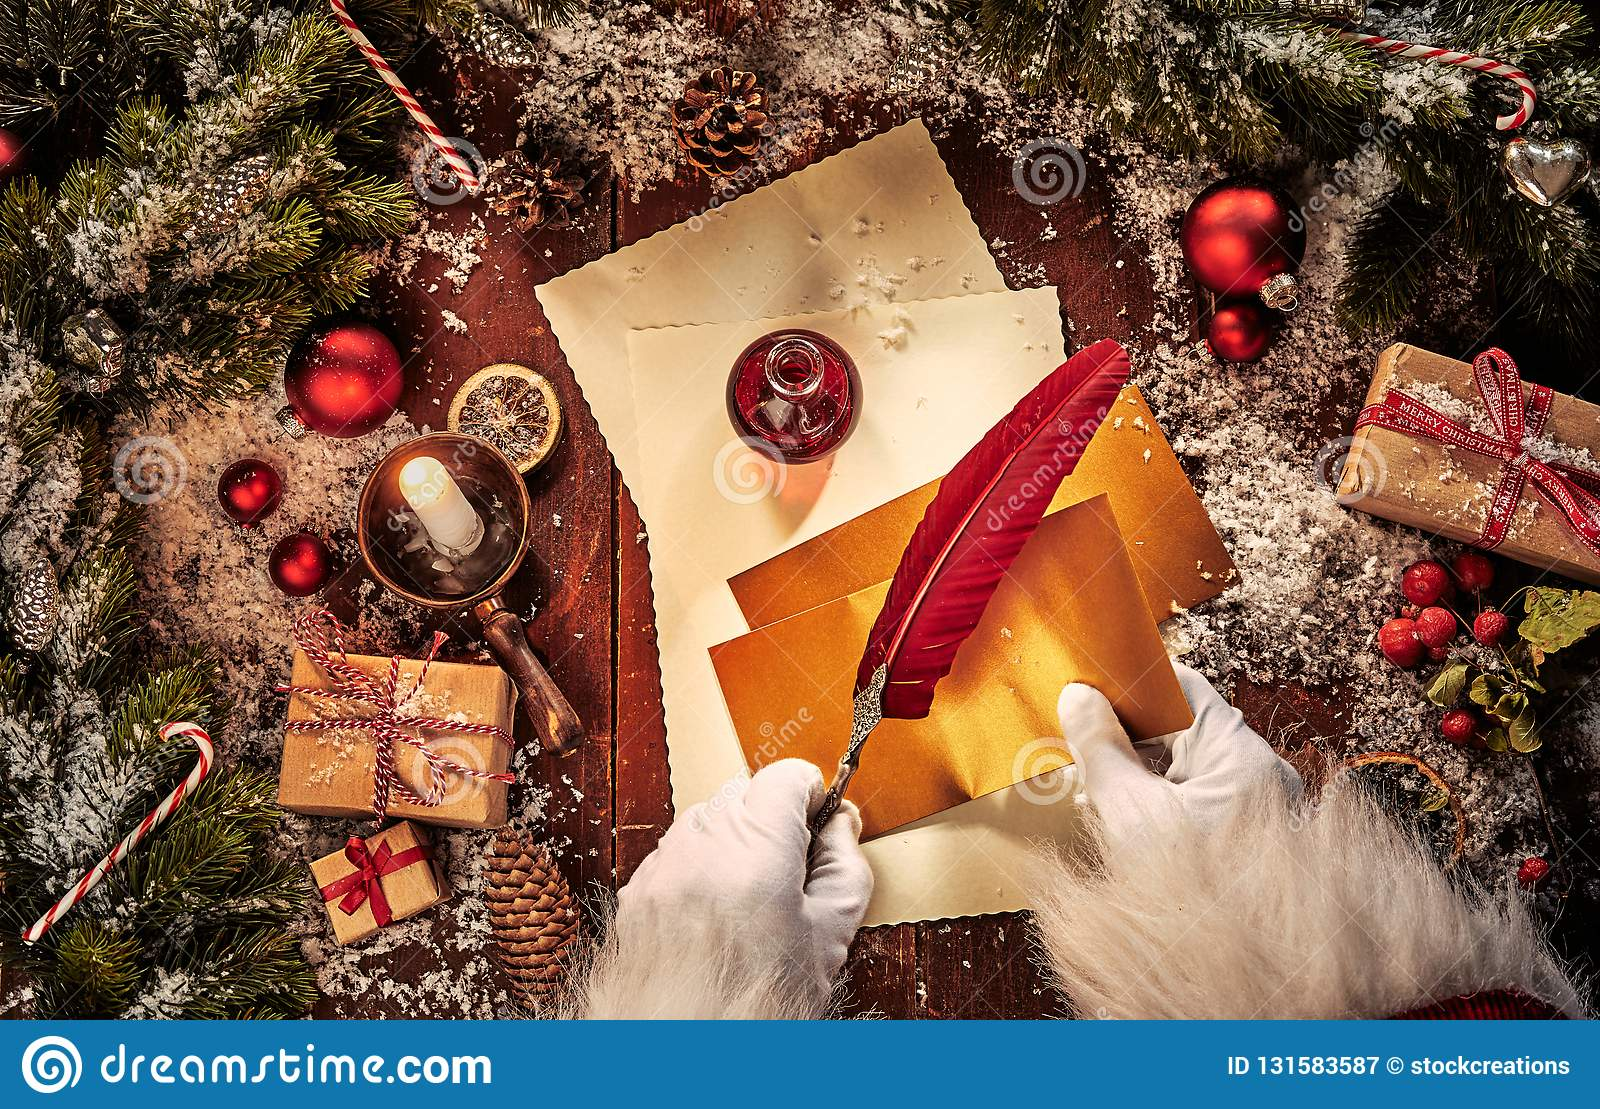 Vintage Christmas Scene With Santa Claus Writing A Letter With A Feather Quill Pen And Decorations On A Rustic Table With Stock Image Image Of Life Vintage 131583587